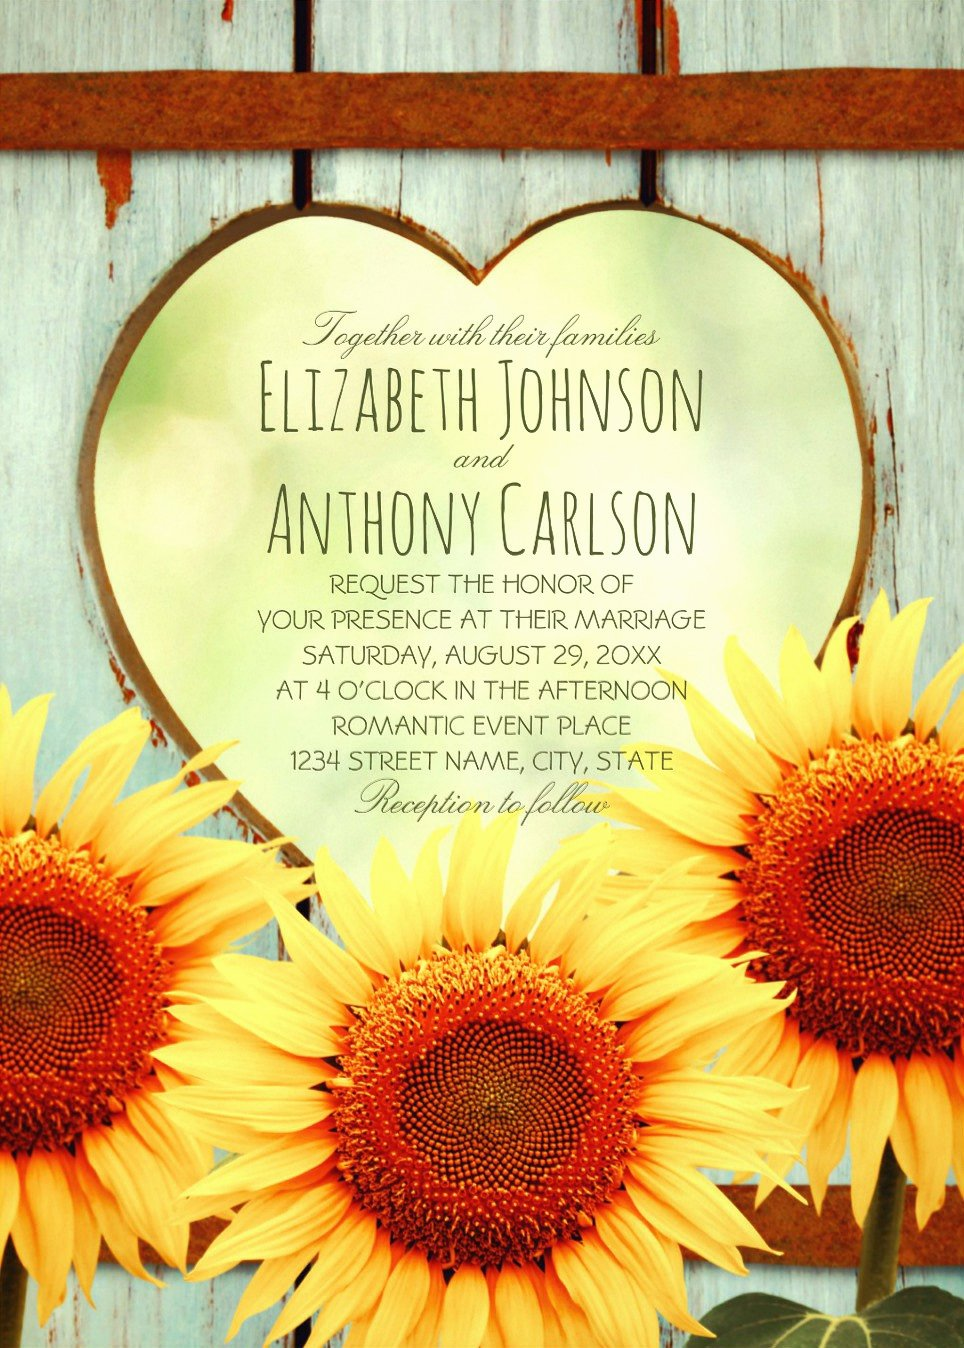 Rustic Sunflower Wedding Invitations Lovely Unique Vintage Rustic Sunflower Wedding Invitations Creative Invites